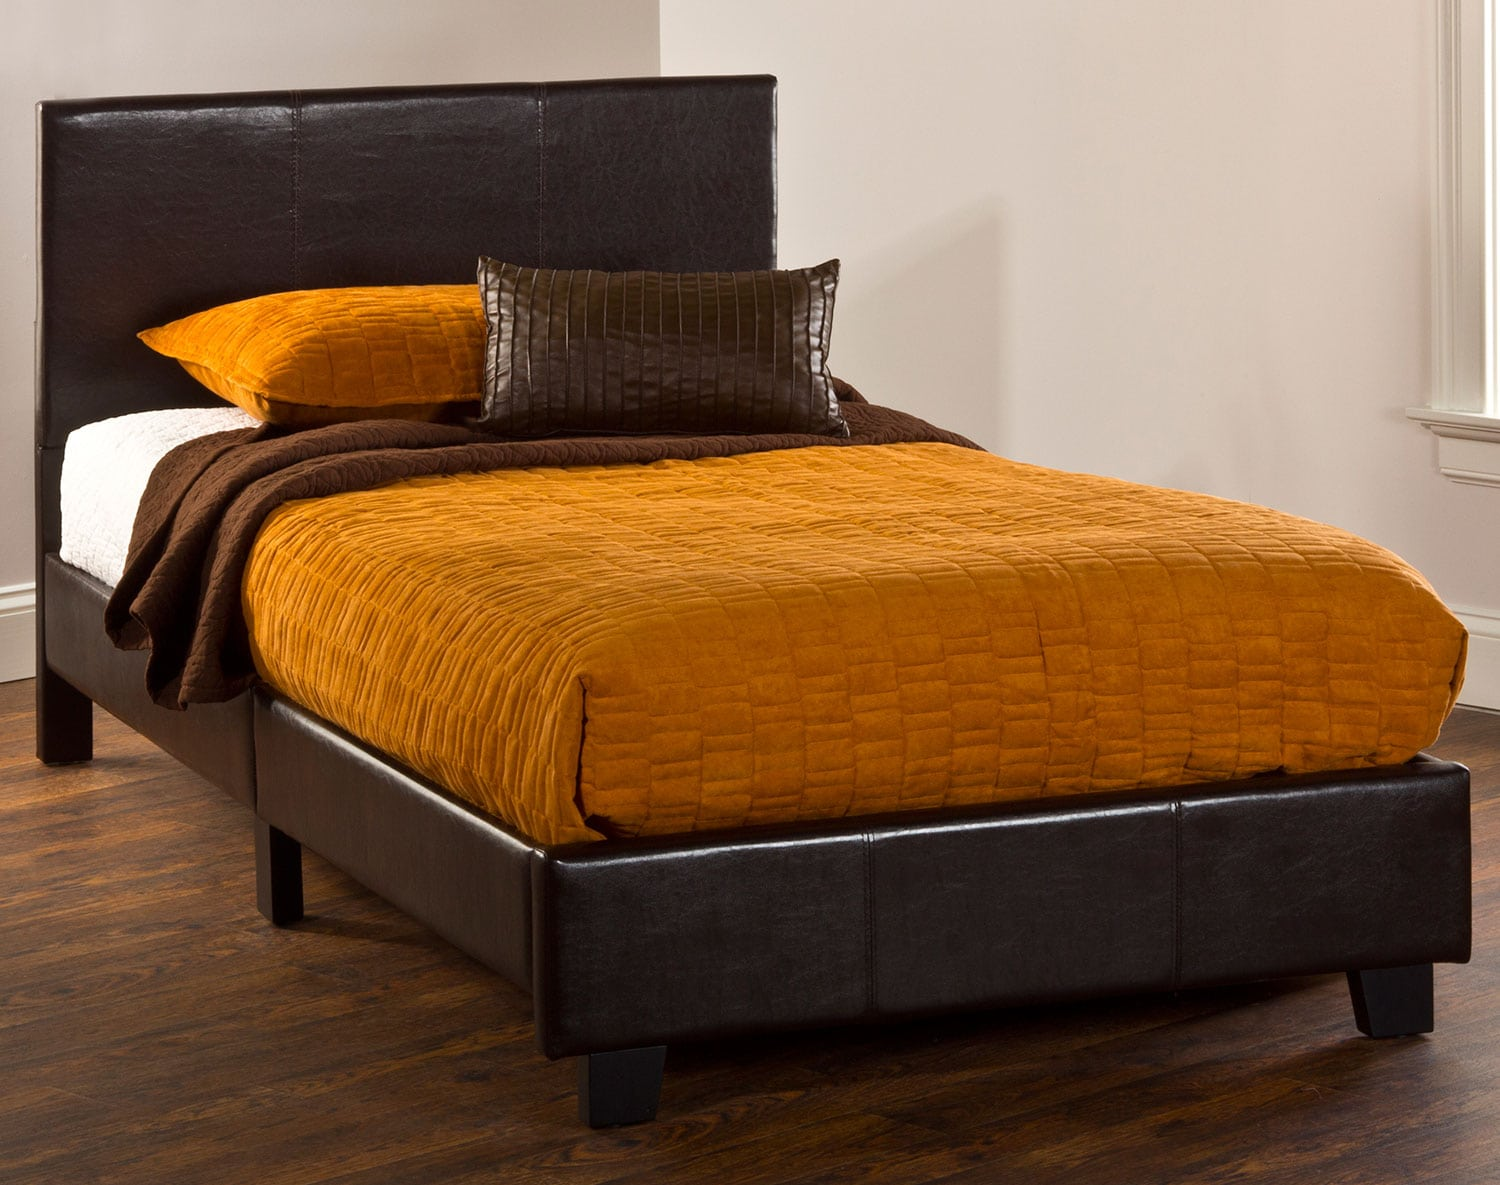 The Spring Bed Collection